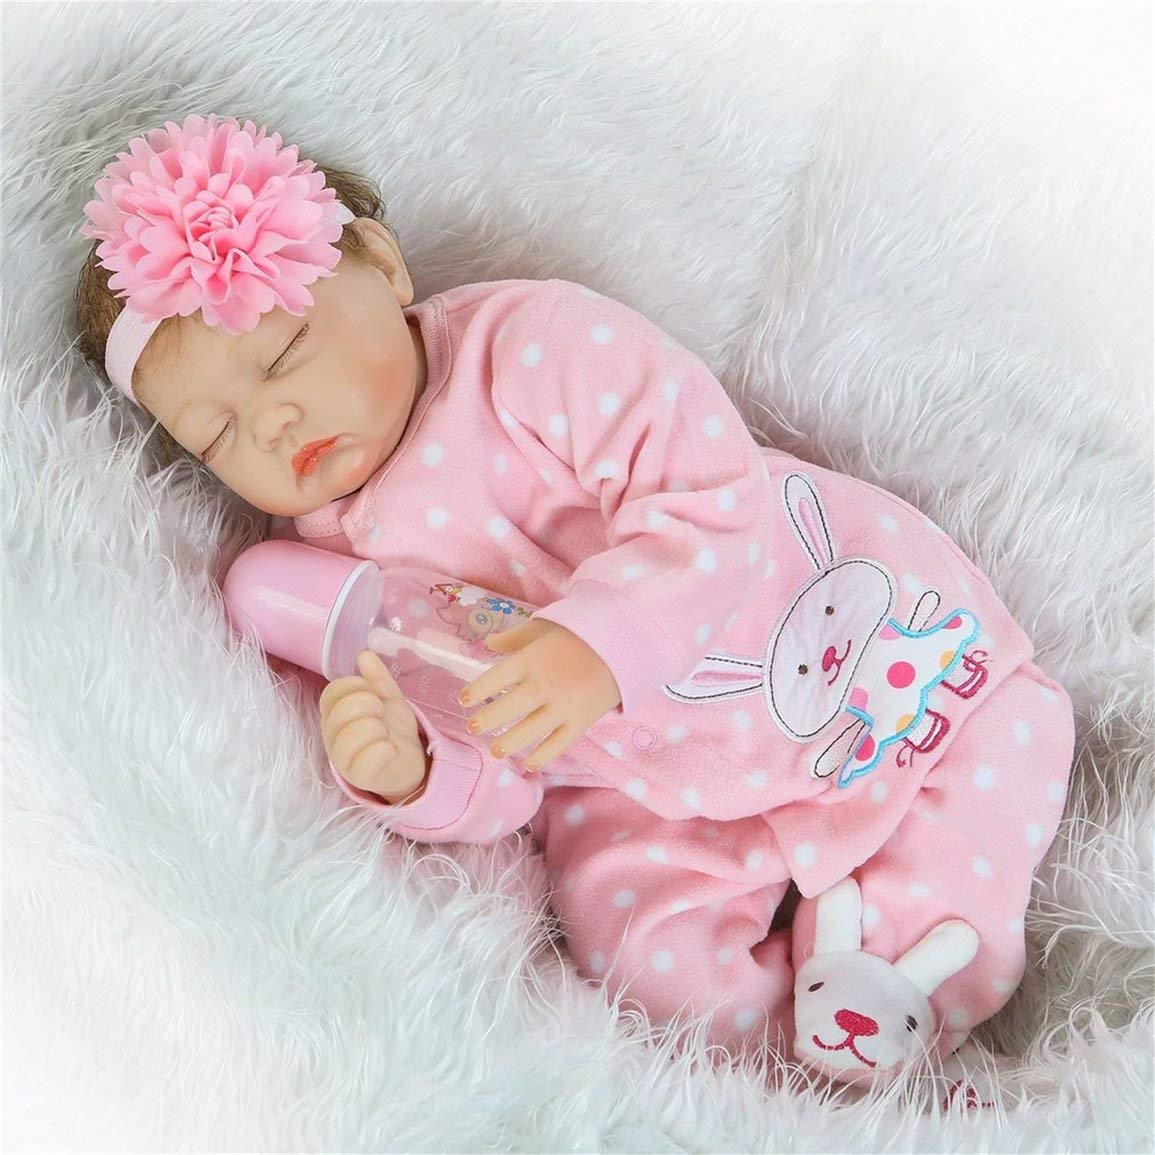 22 Inch Close Eyes Baby Doll Silicone Vinyl Baby Doll Handmade Adorable Lovely Lifelike Toddler Newborn Baby Doll Toys